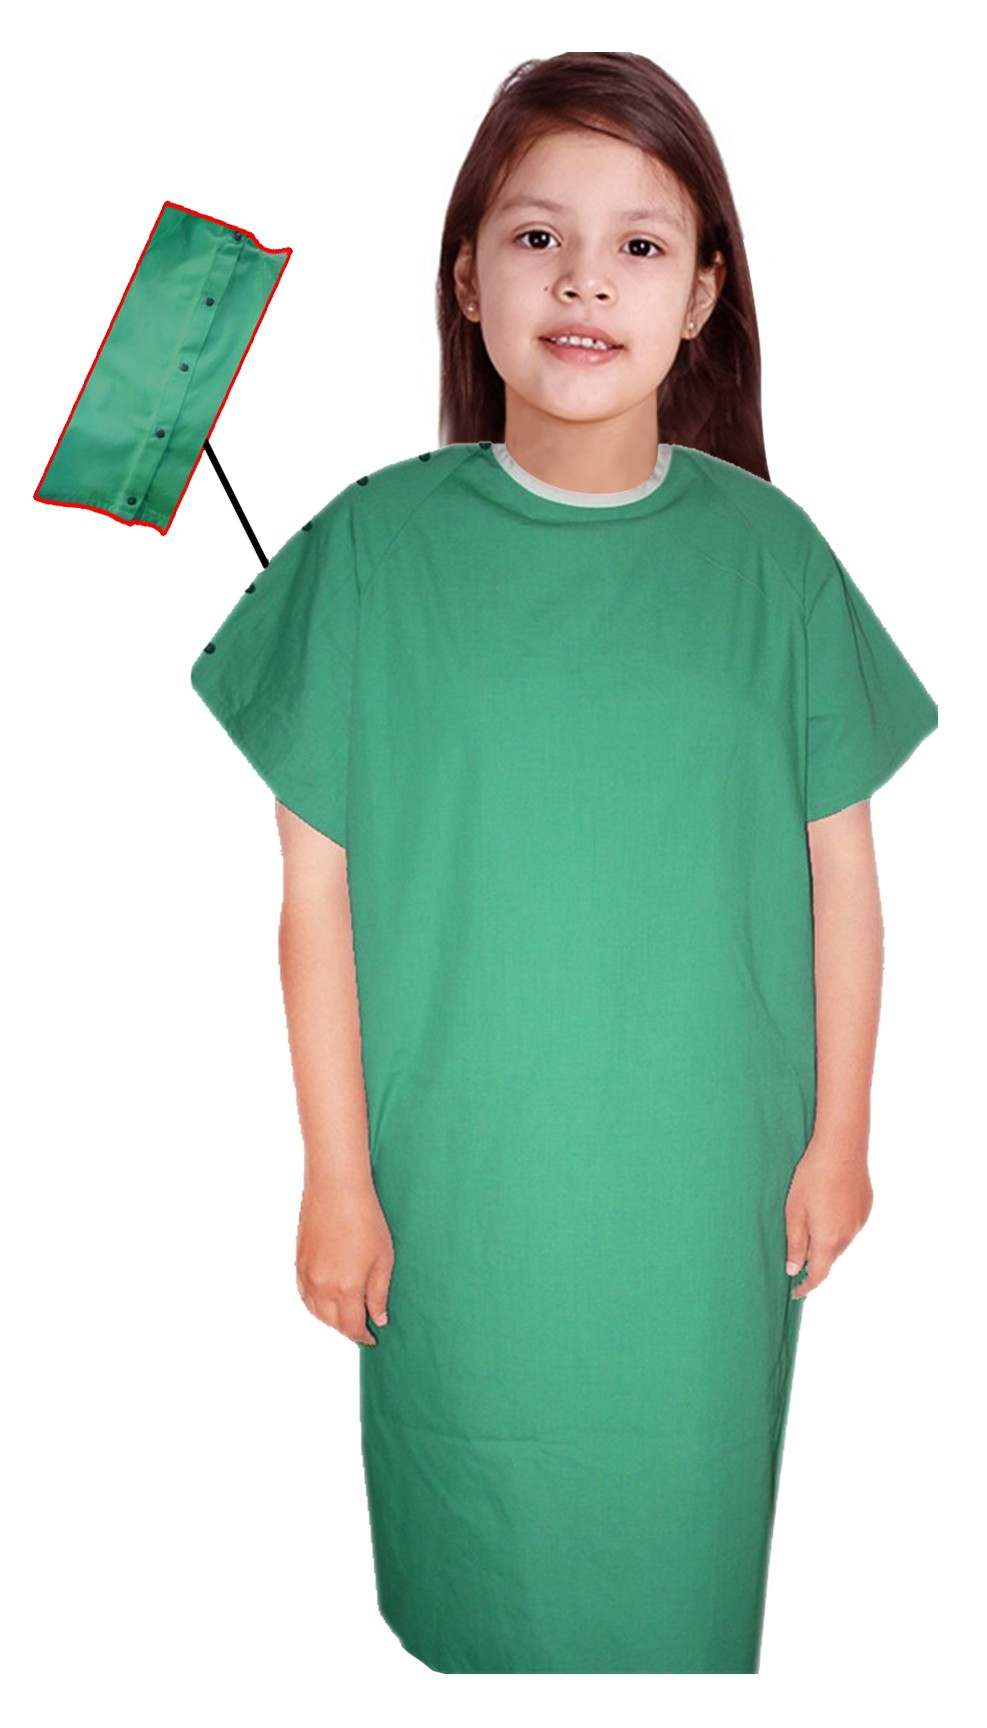 Children Patient Gown Half Sleeve with Contrast Piping Back Open, shoulder opening with snap buttons Tie-able from Two Points Chest 33 Inches Length 26 Inches And Chest 41 Inches Length 35 Inches (Available in 37 Color)